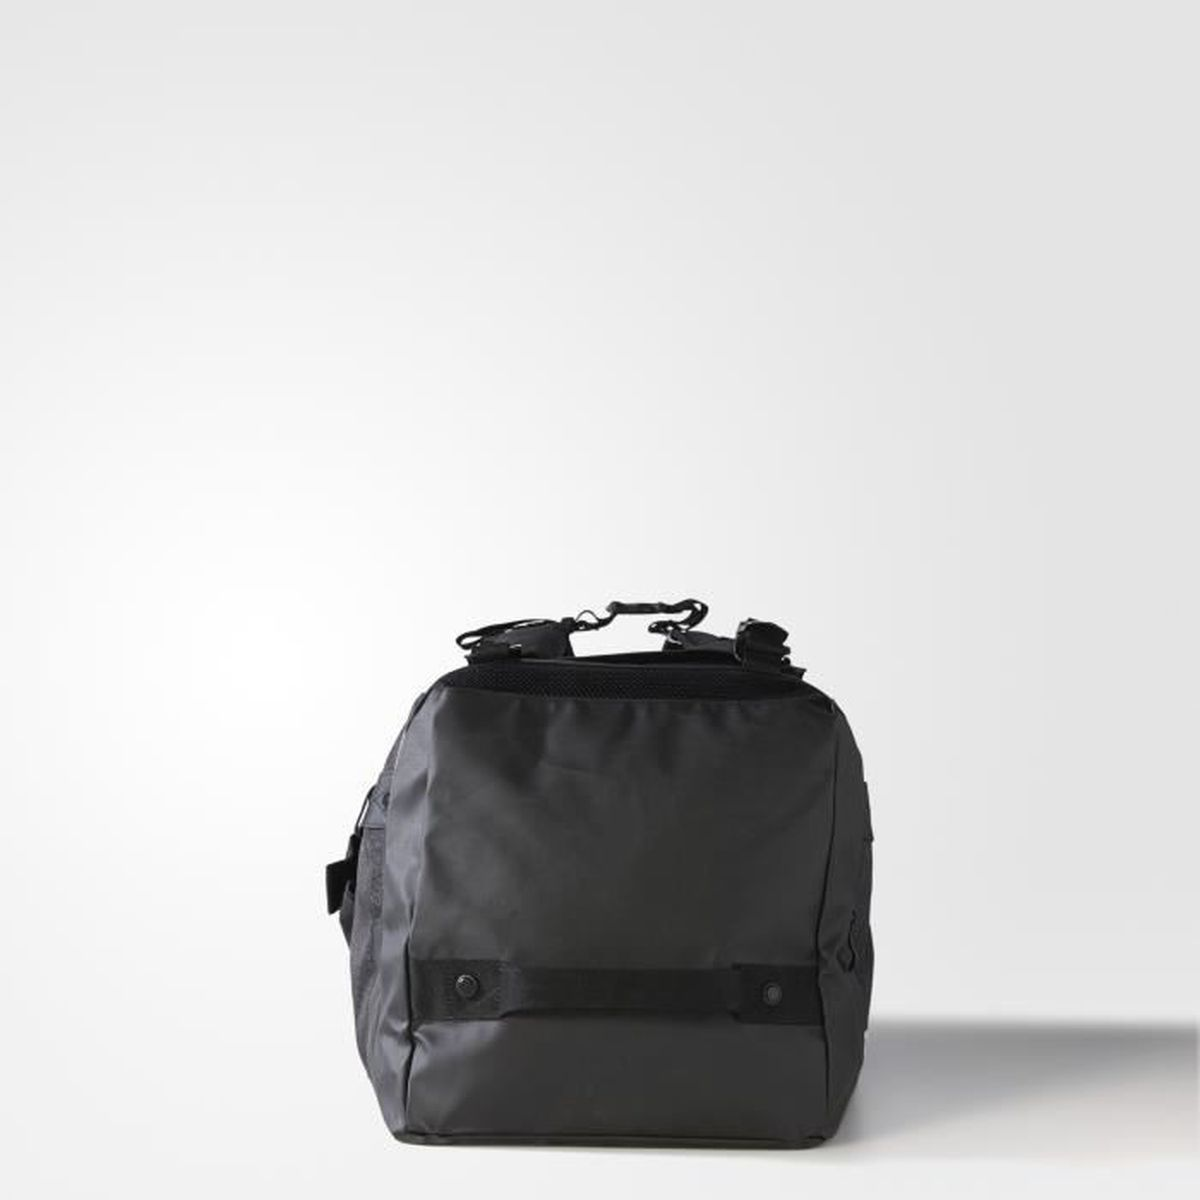 Adidas Sac de voyage Travel Transformer A3TUugD